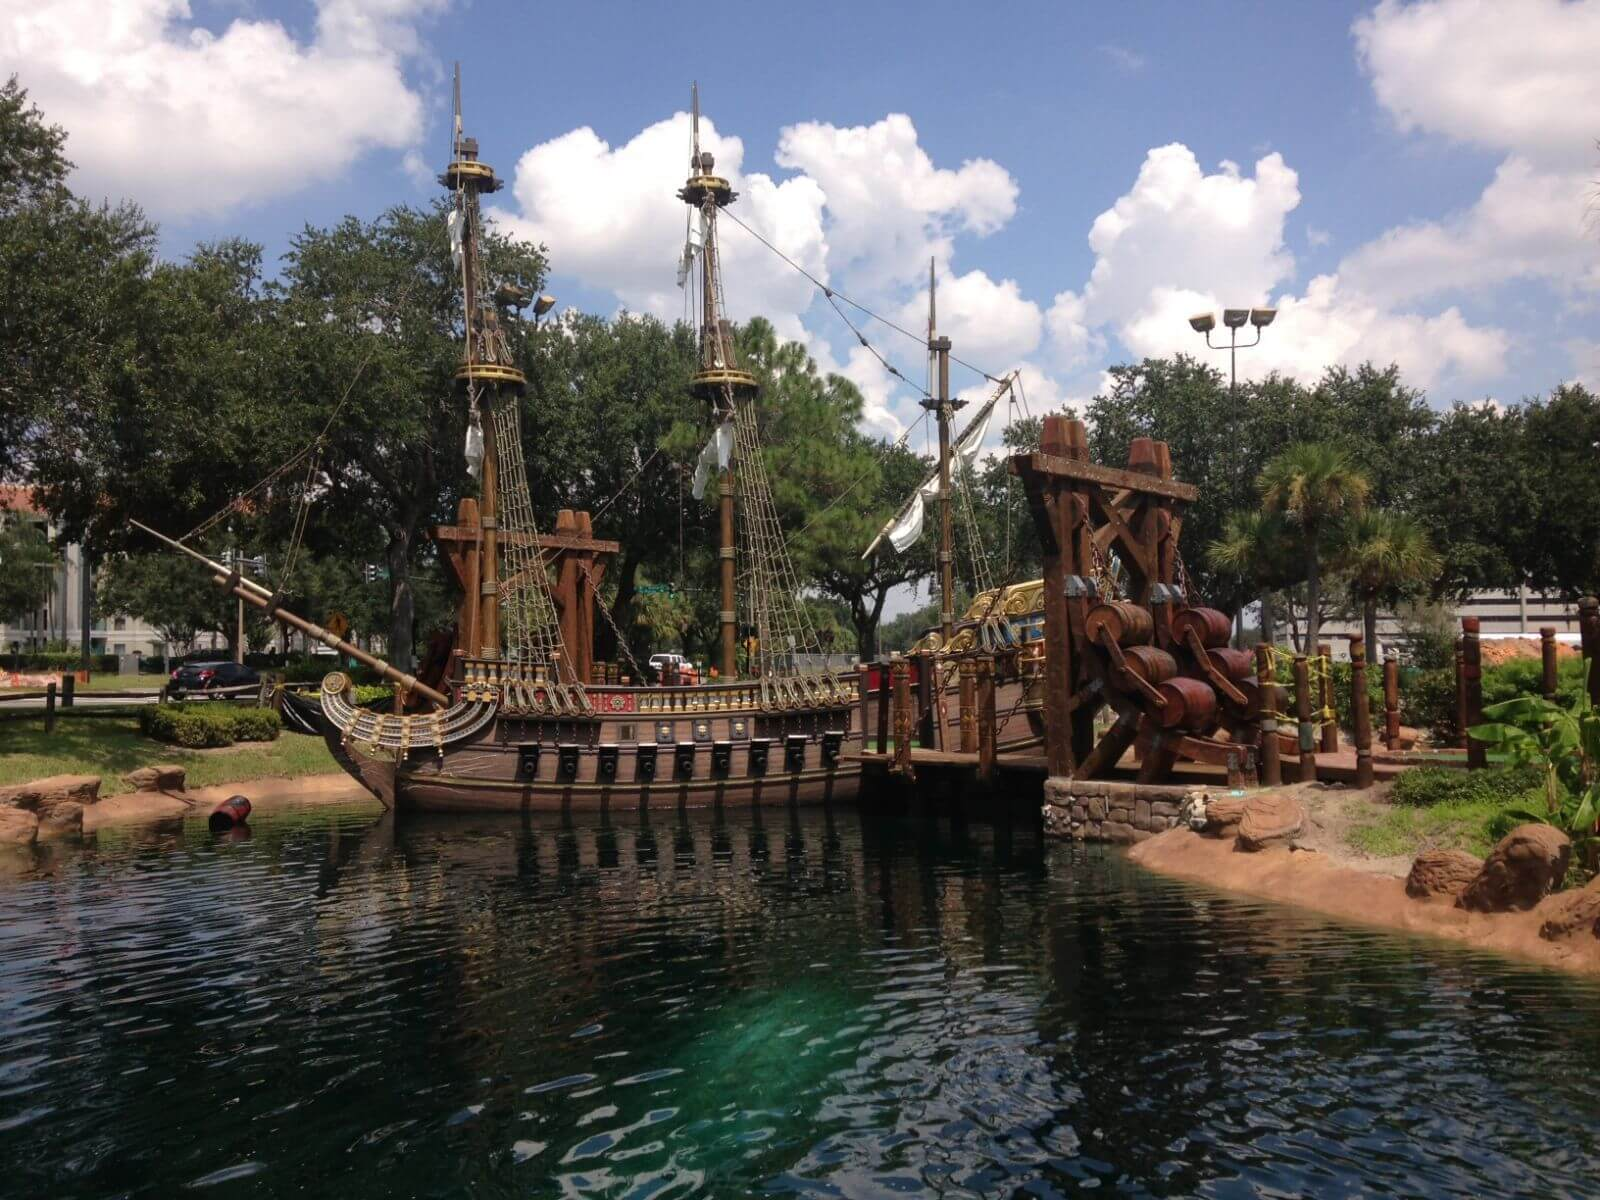 Pirate's Island Adventure Golf em Orlando: Pirate's Island Adventure Golf em Orlando: Pirate's Cove Adventure Golf